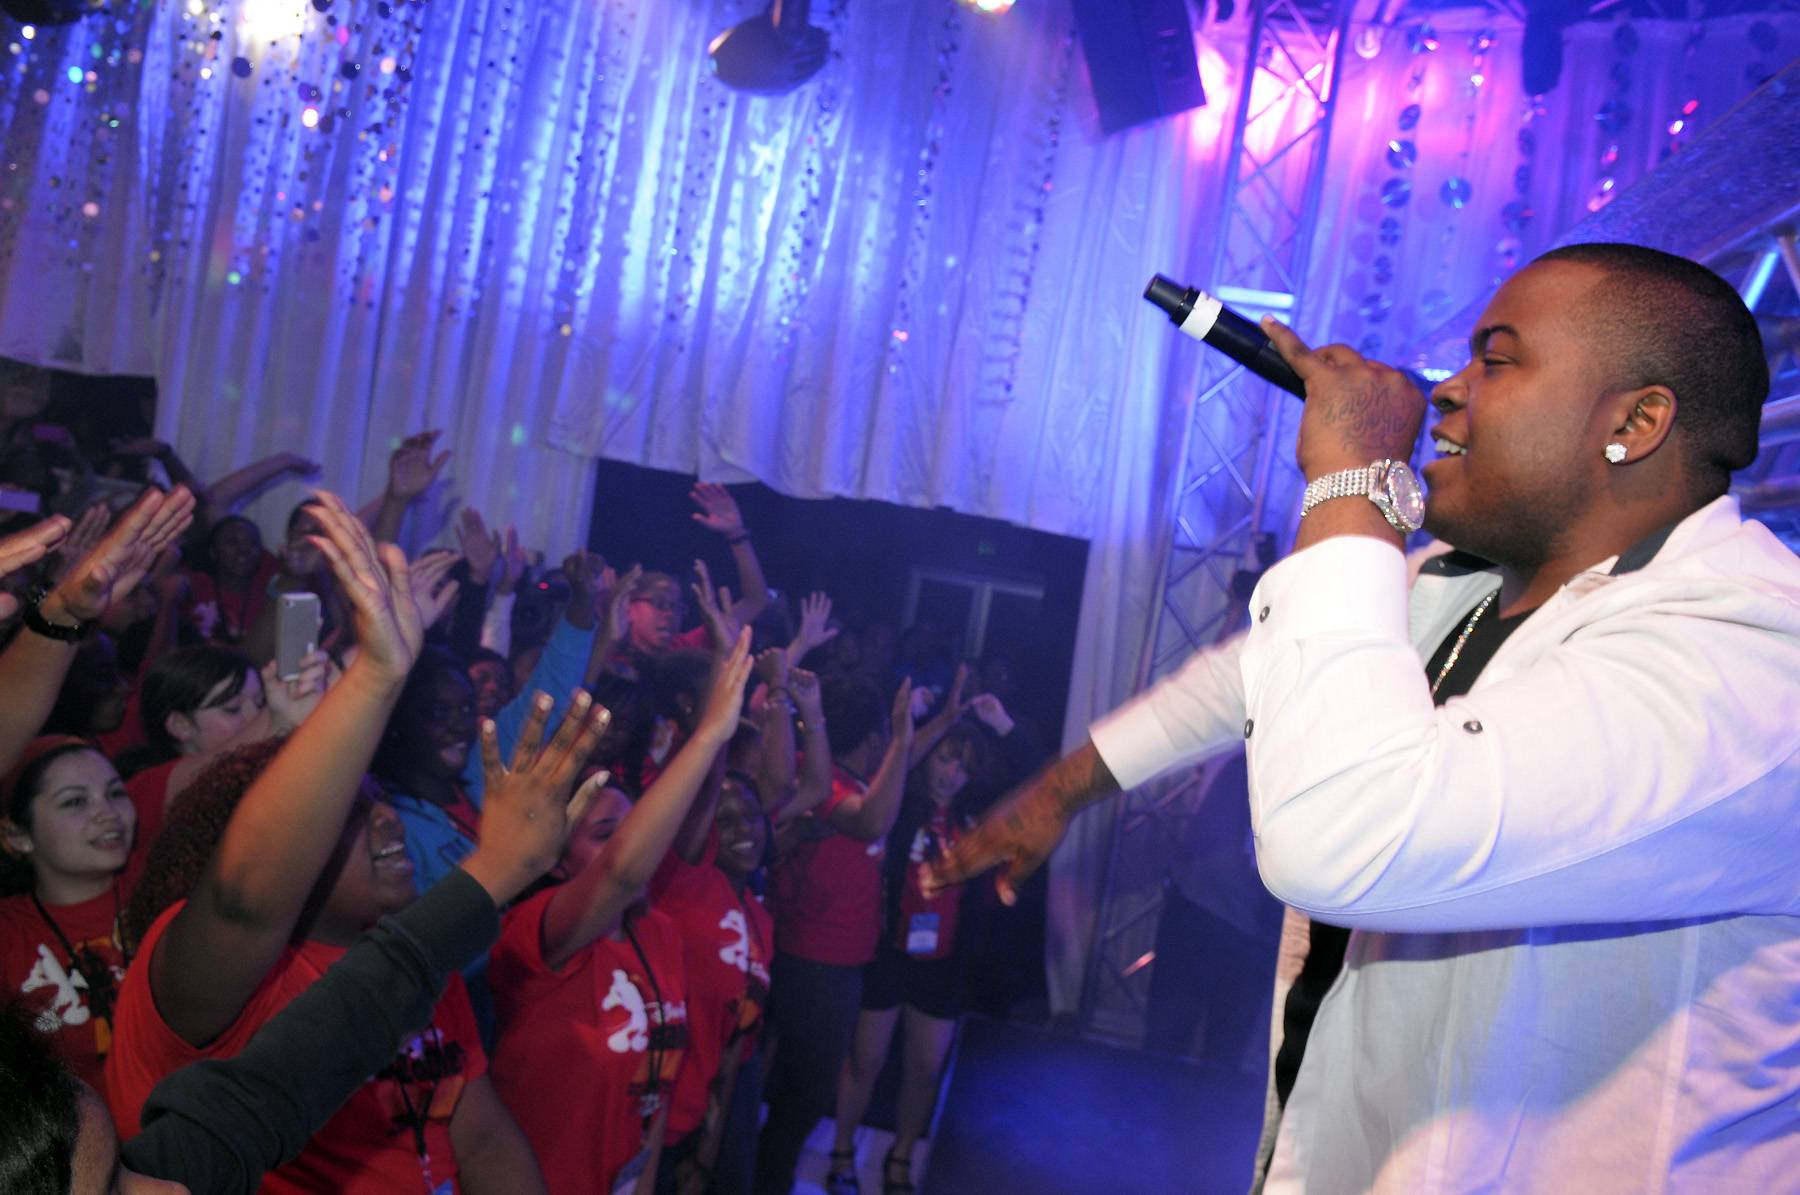 Platinum Status - Platinum-selling recording artist Sean Kingston surprised the Dreamers with a performance of his reggae-infused hits on March 10. (Photo: Phelan Ebenhack)